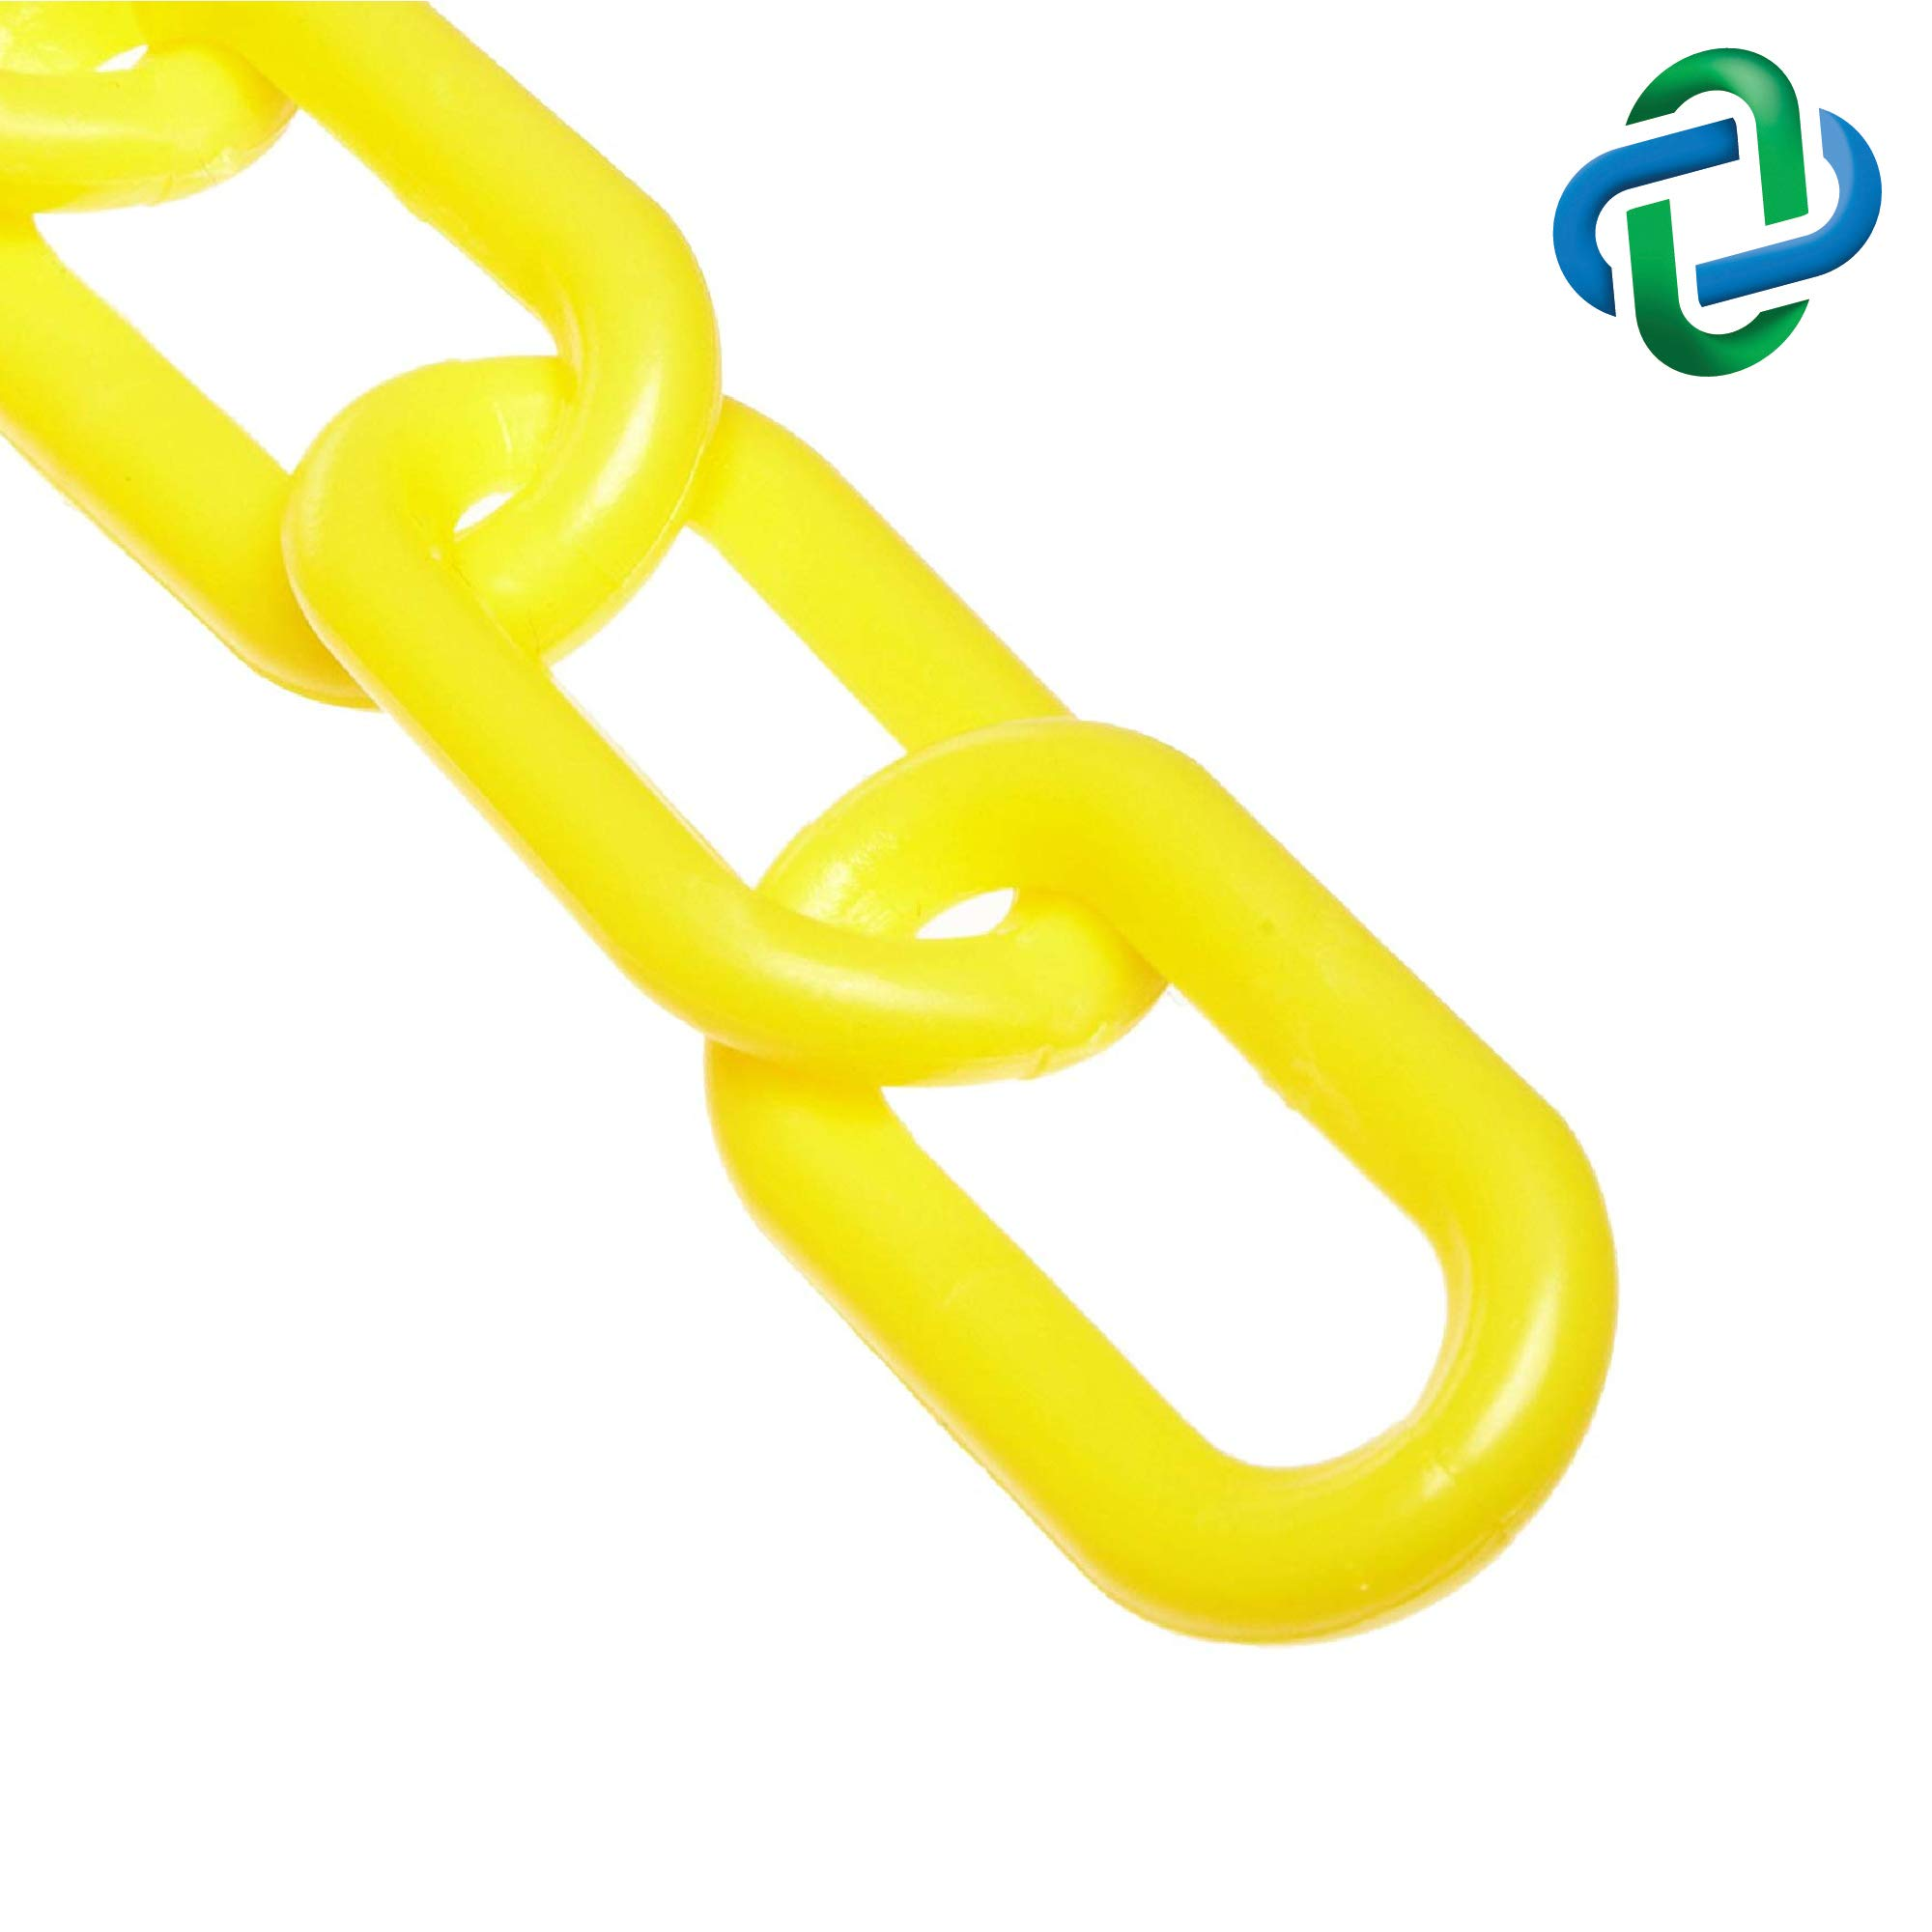 Mr. Chain Plastic Barrier Chain, Yellow, 2-Inch Link Diameter, 100-Foot Length (50002-100) by Mr. Chain